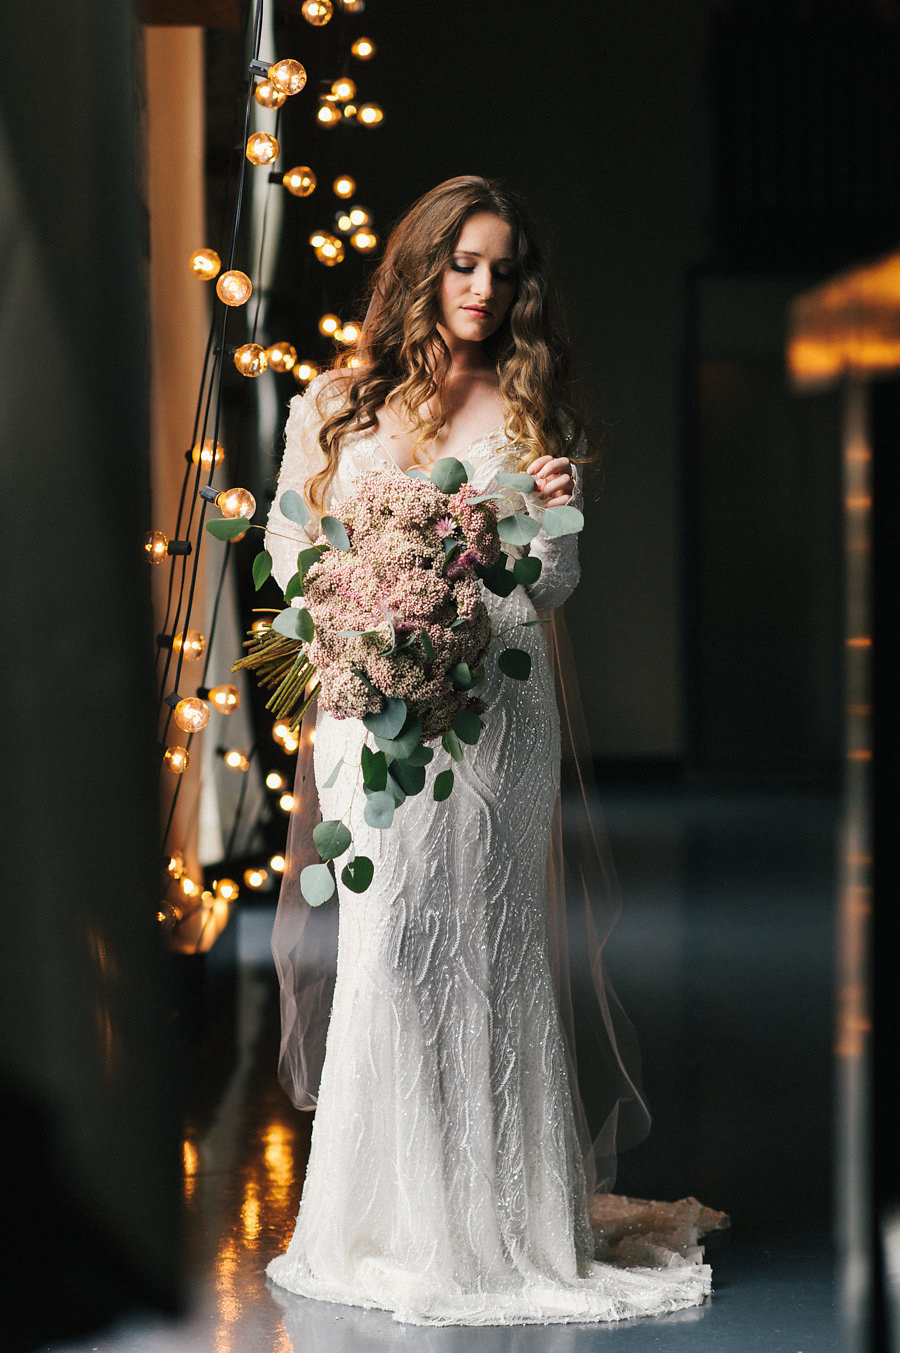 the-green-building-bride-string-lights-long-sleeve-dress-unique-bouquet